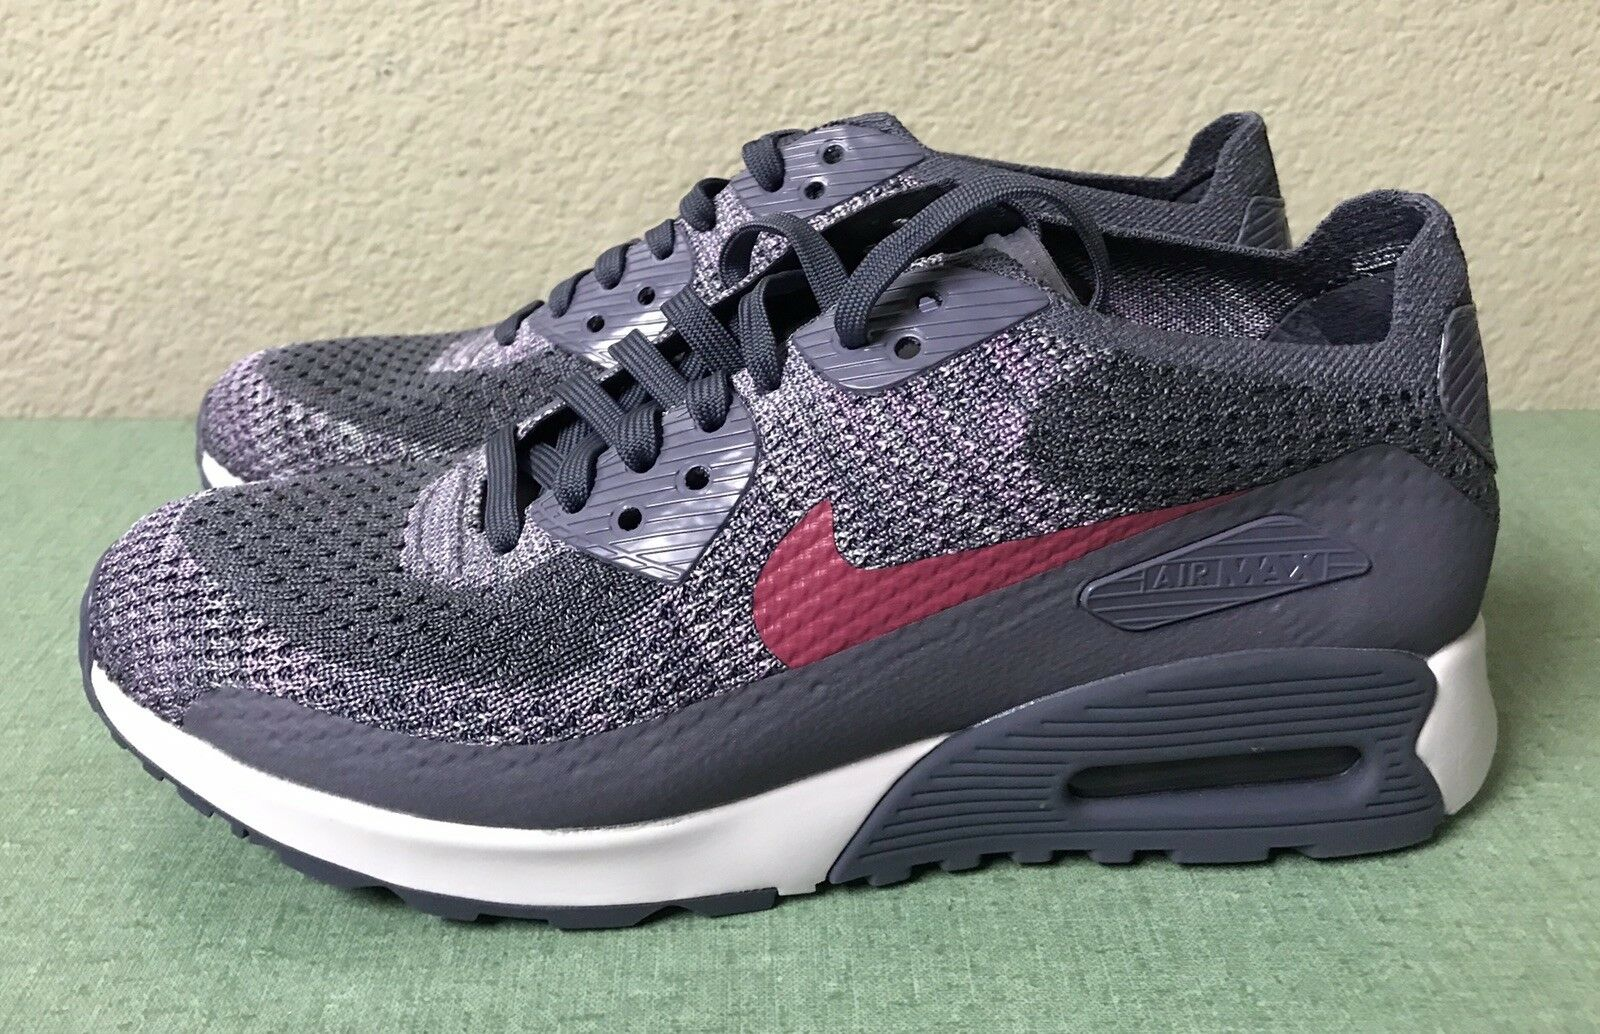 32f1dc6c09 Nike Air Max 90 Ultra 2.0 Flyknit Light Carbon Pink Force White Women's Sz  5.5